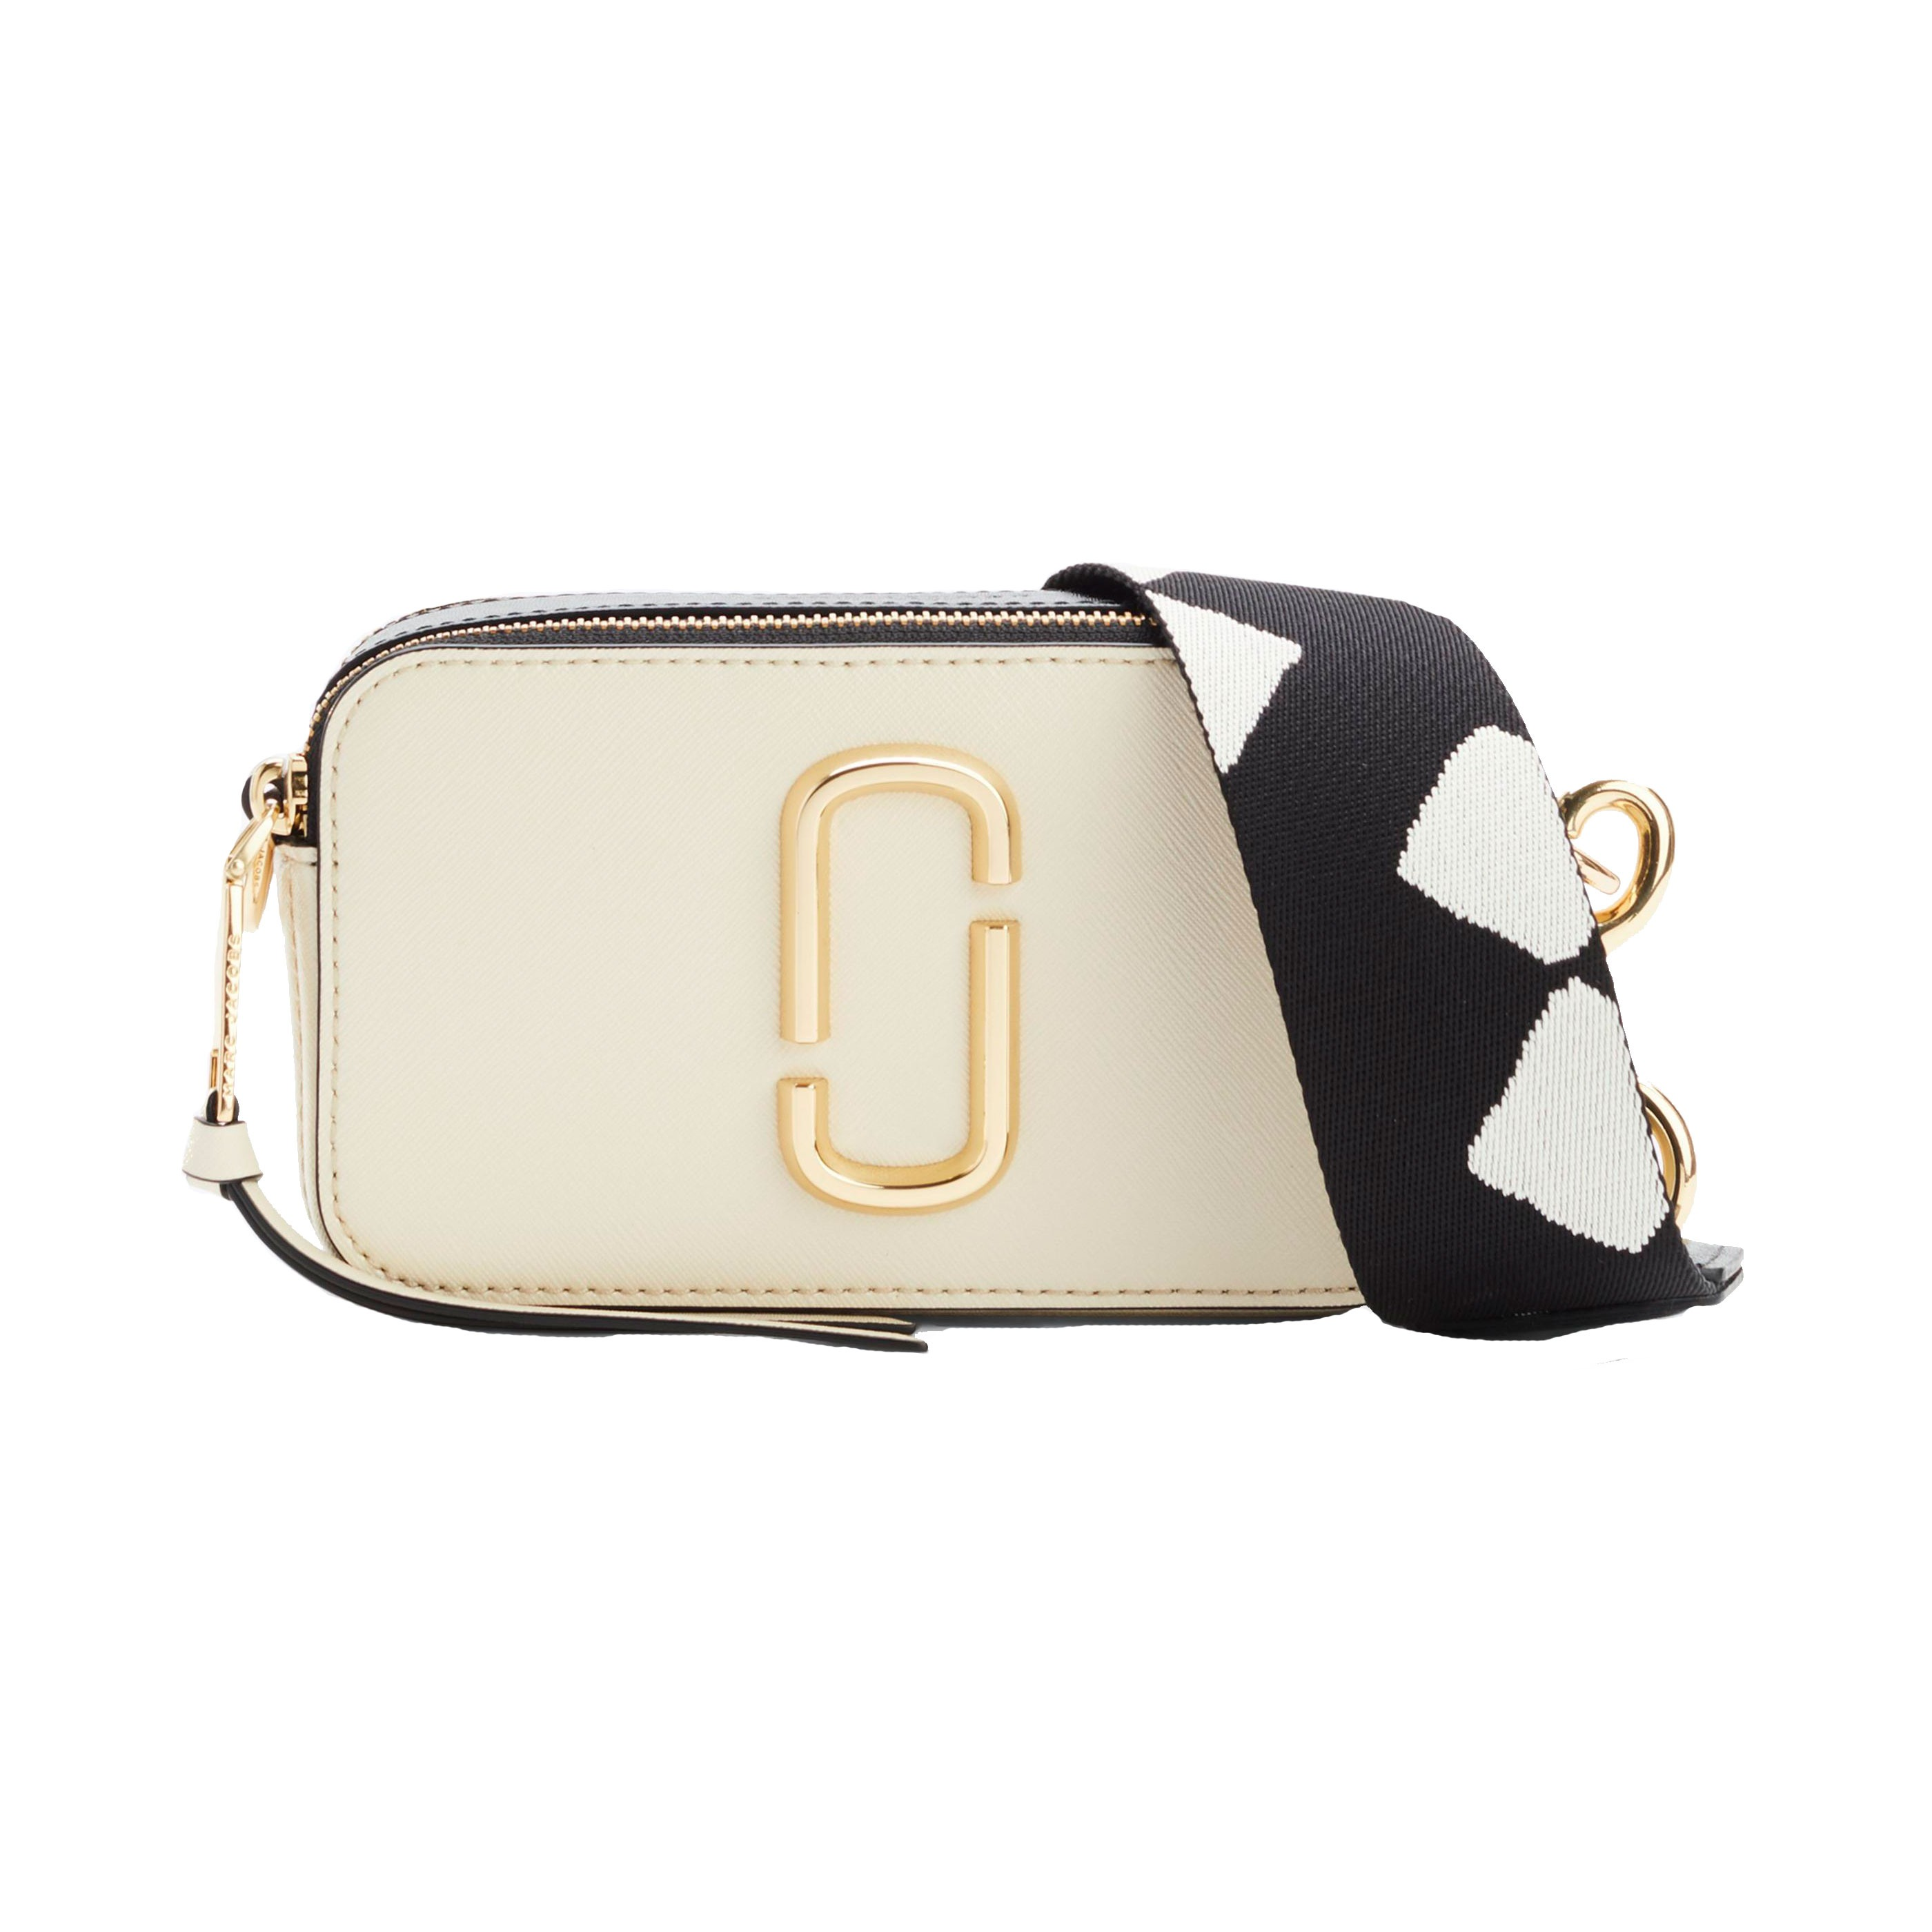 56dde3bbd02 Marc Jacobs – Snapshot Small Camera Taske, Porcelain Multi - Phigo ...